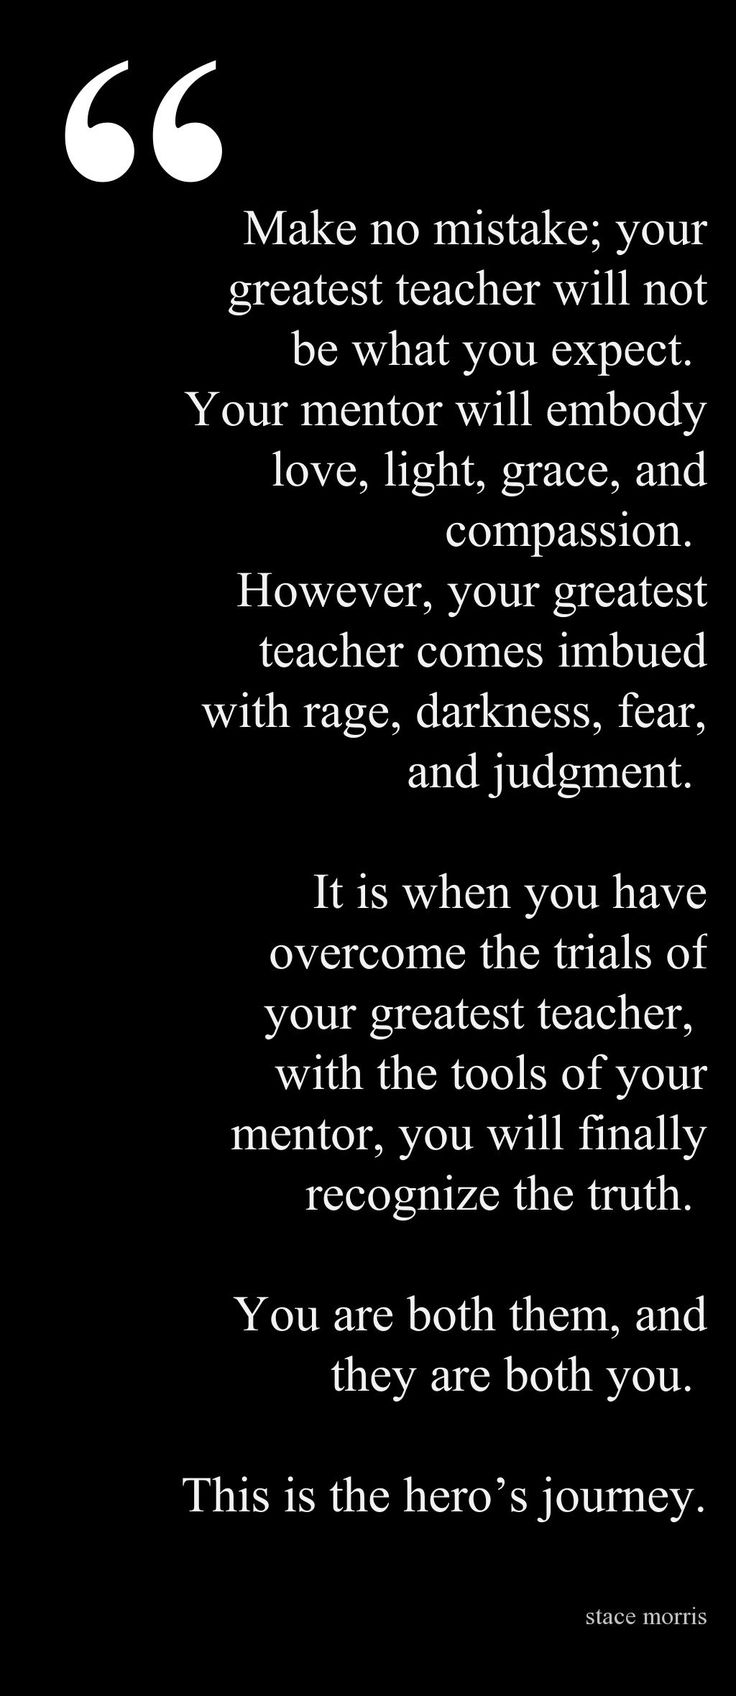 You are your own greatest mentor & teacher. | Stace Morris #inspiration #advice #quotes